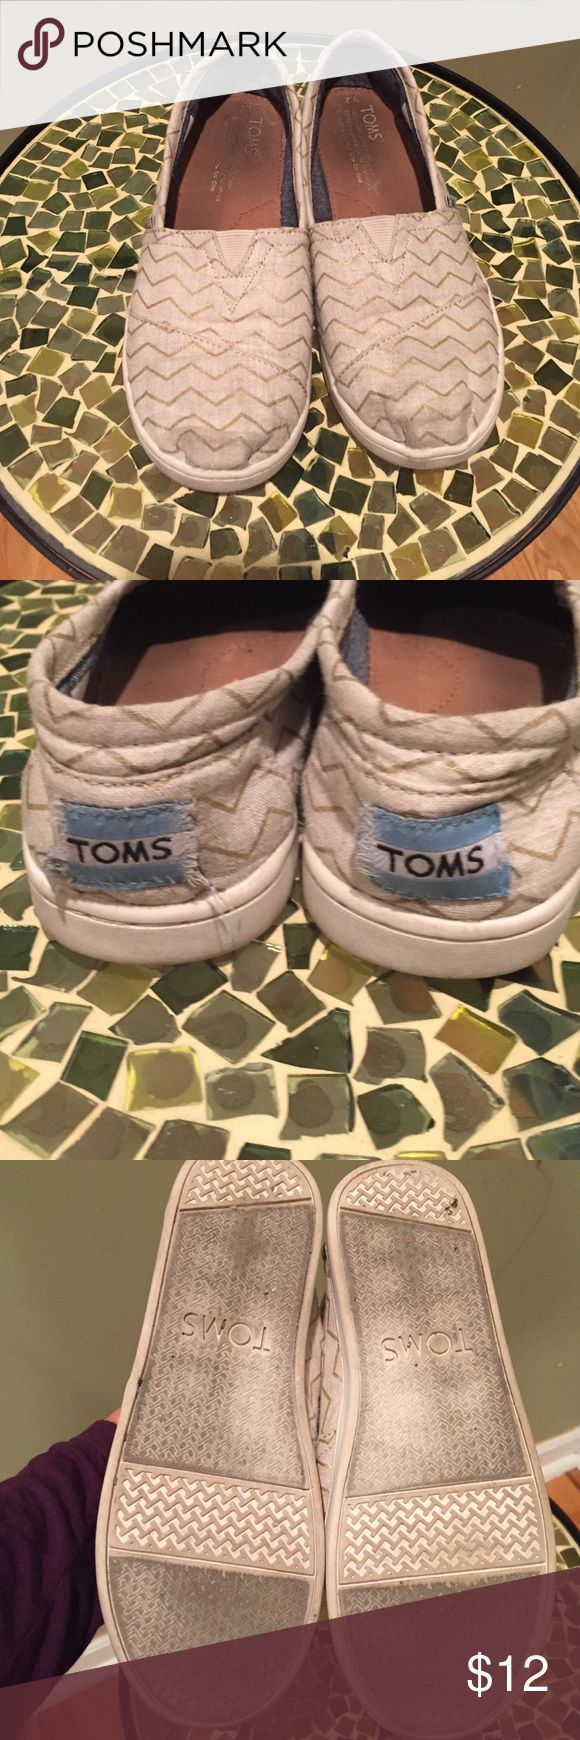 TOMS FLATS Used Girls Toms. Cute gold and ivory chevron style. The Tom's tag on the back of the shoe is coming apart. TOMS Shoes Moccasins